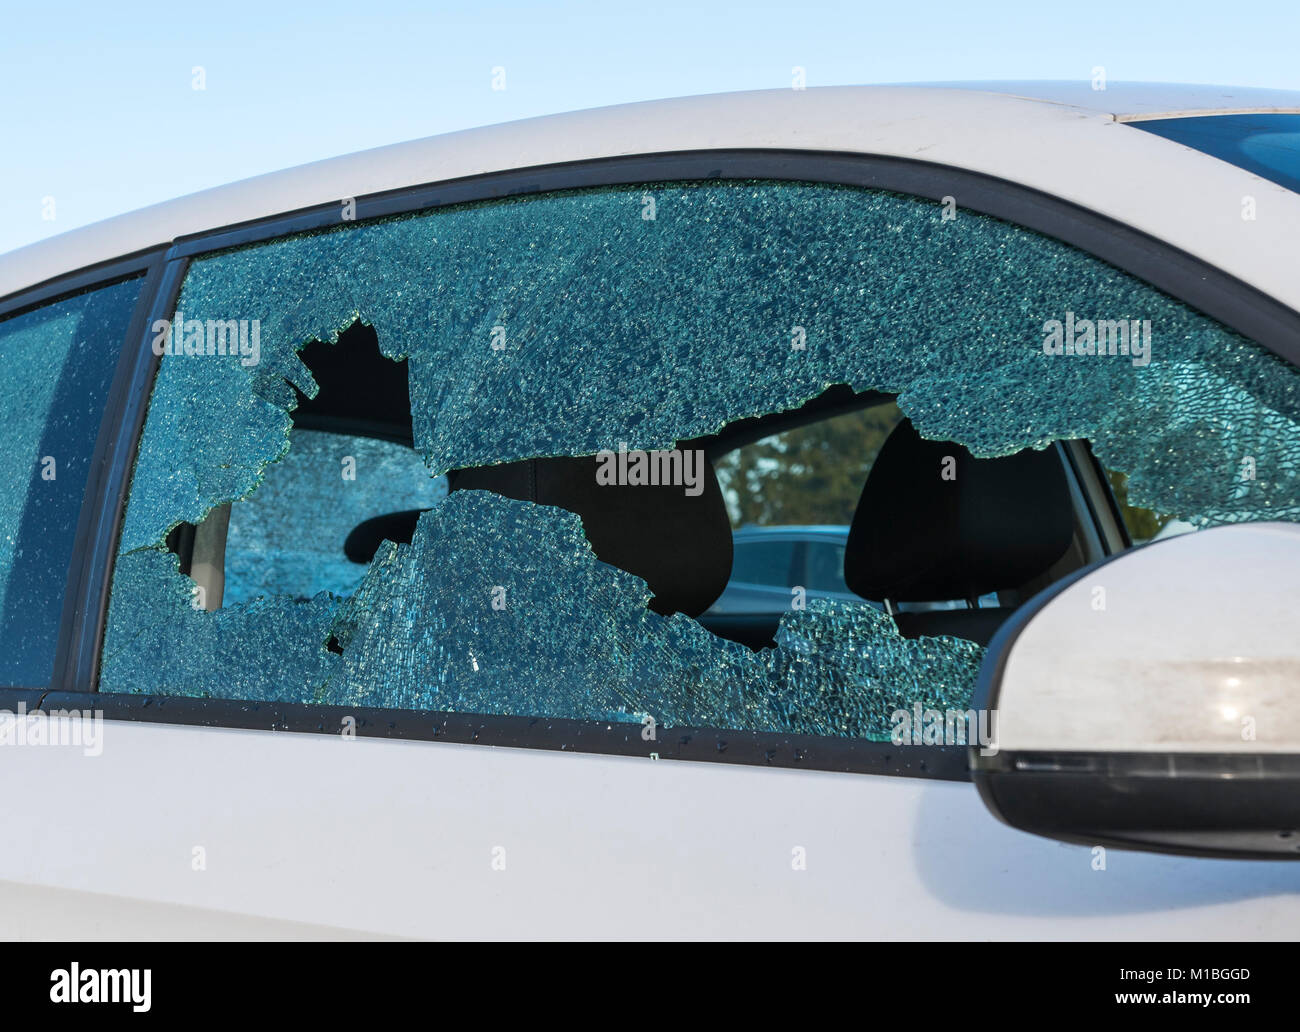 Vandalised car with a smashed broken window. - Stock Image